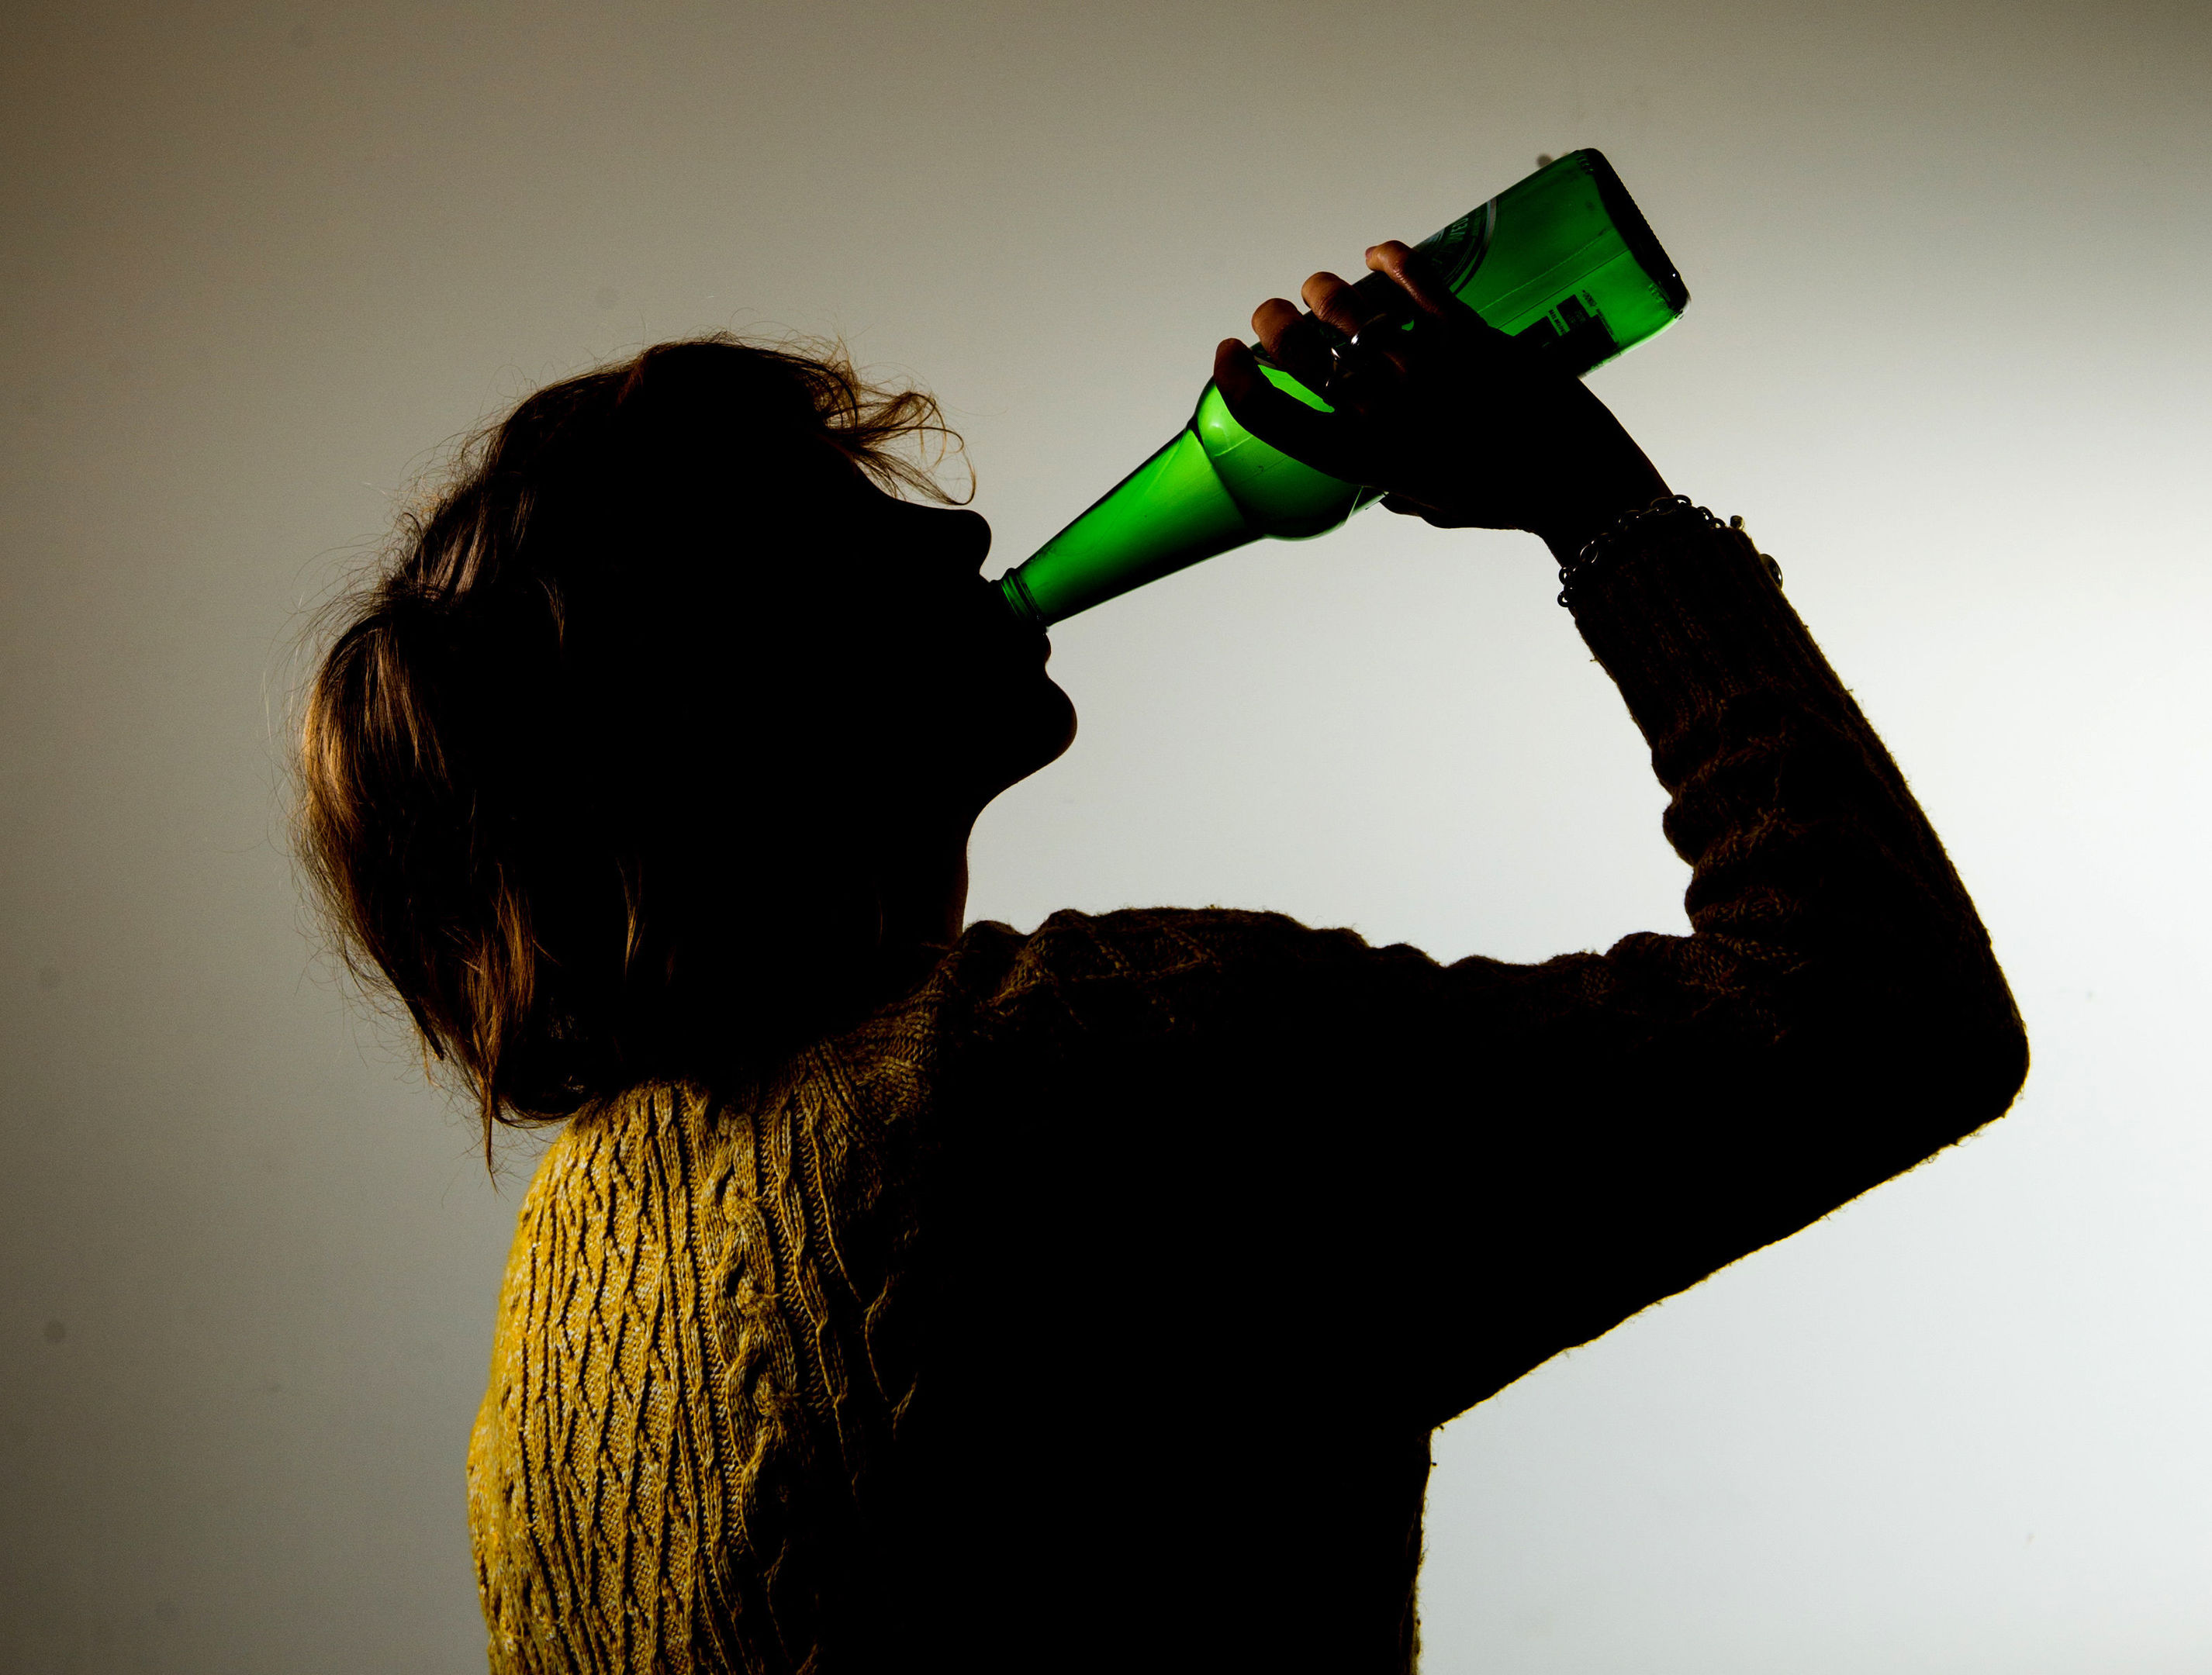 Drinking heavily is more harmful to the poorest people in society, who are at greater risk of illness or death because of alcohol consumption, according to a medical study (Dominic Lipinski/PA)